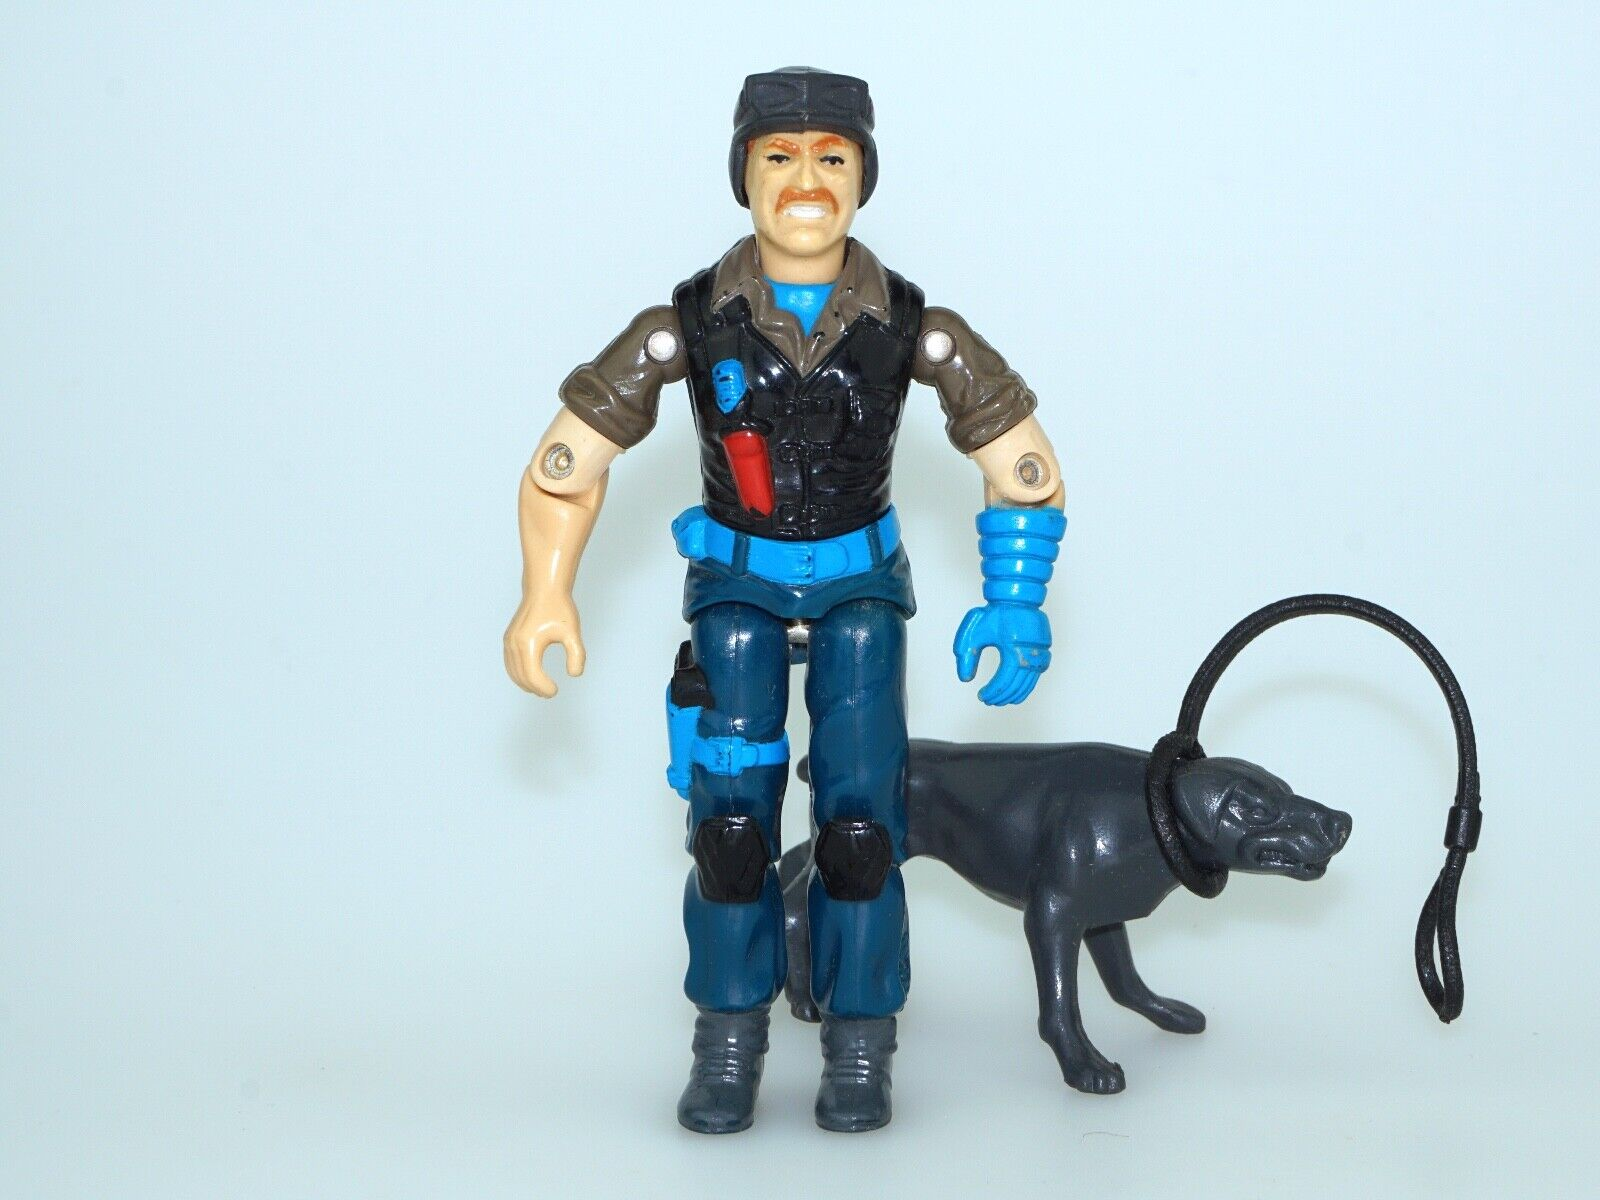 1991 GI JOE UK   EURO EXCLUSIVE NIGHT FORCE MUTT & JUNKYARD NEAR COMPLETE C8+